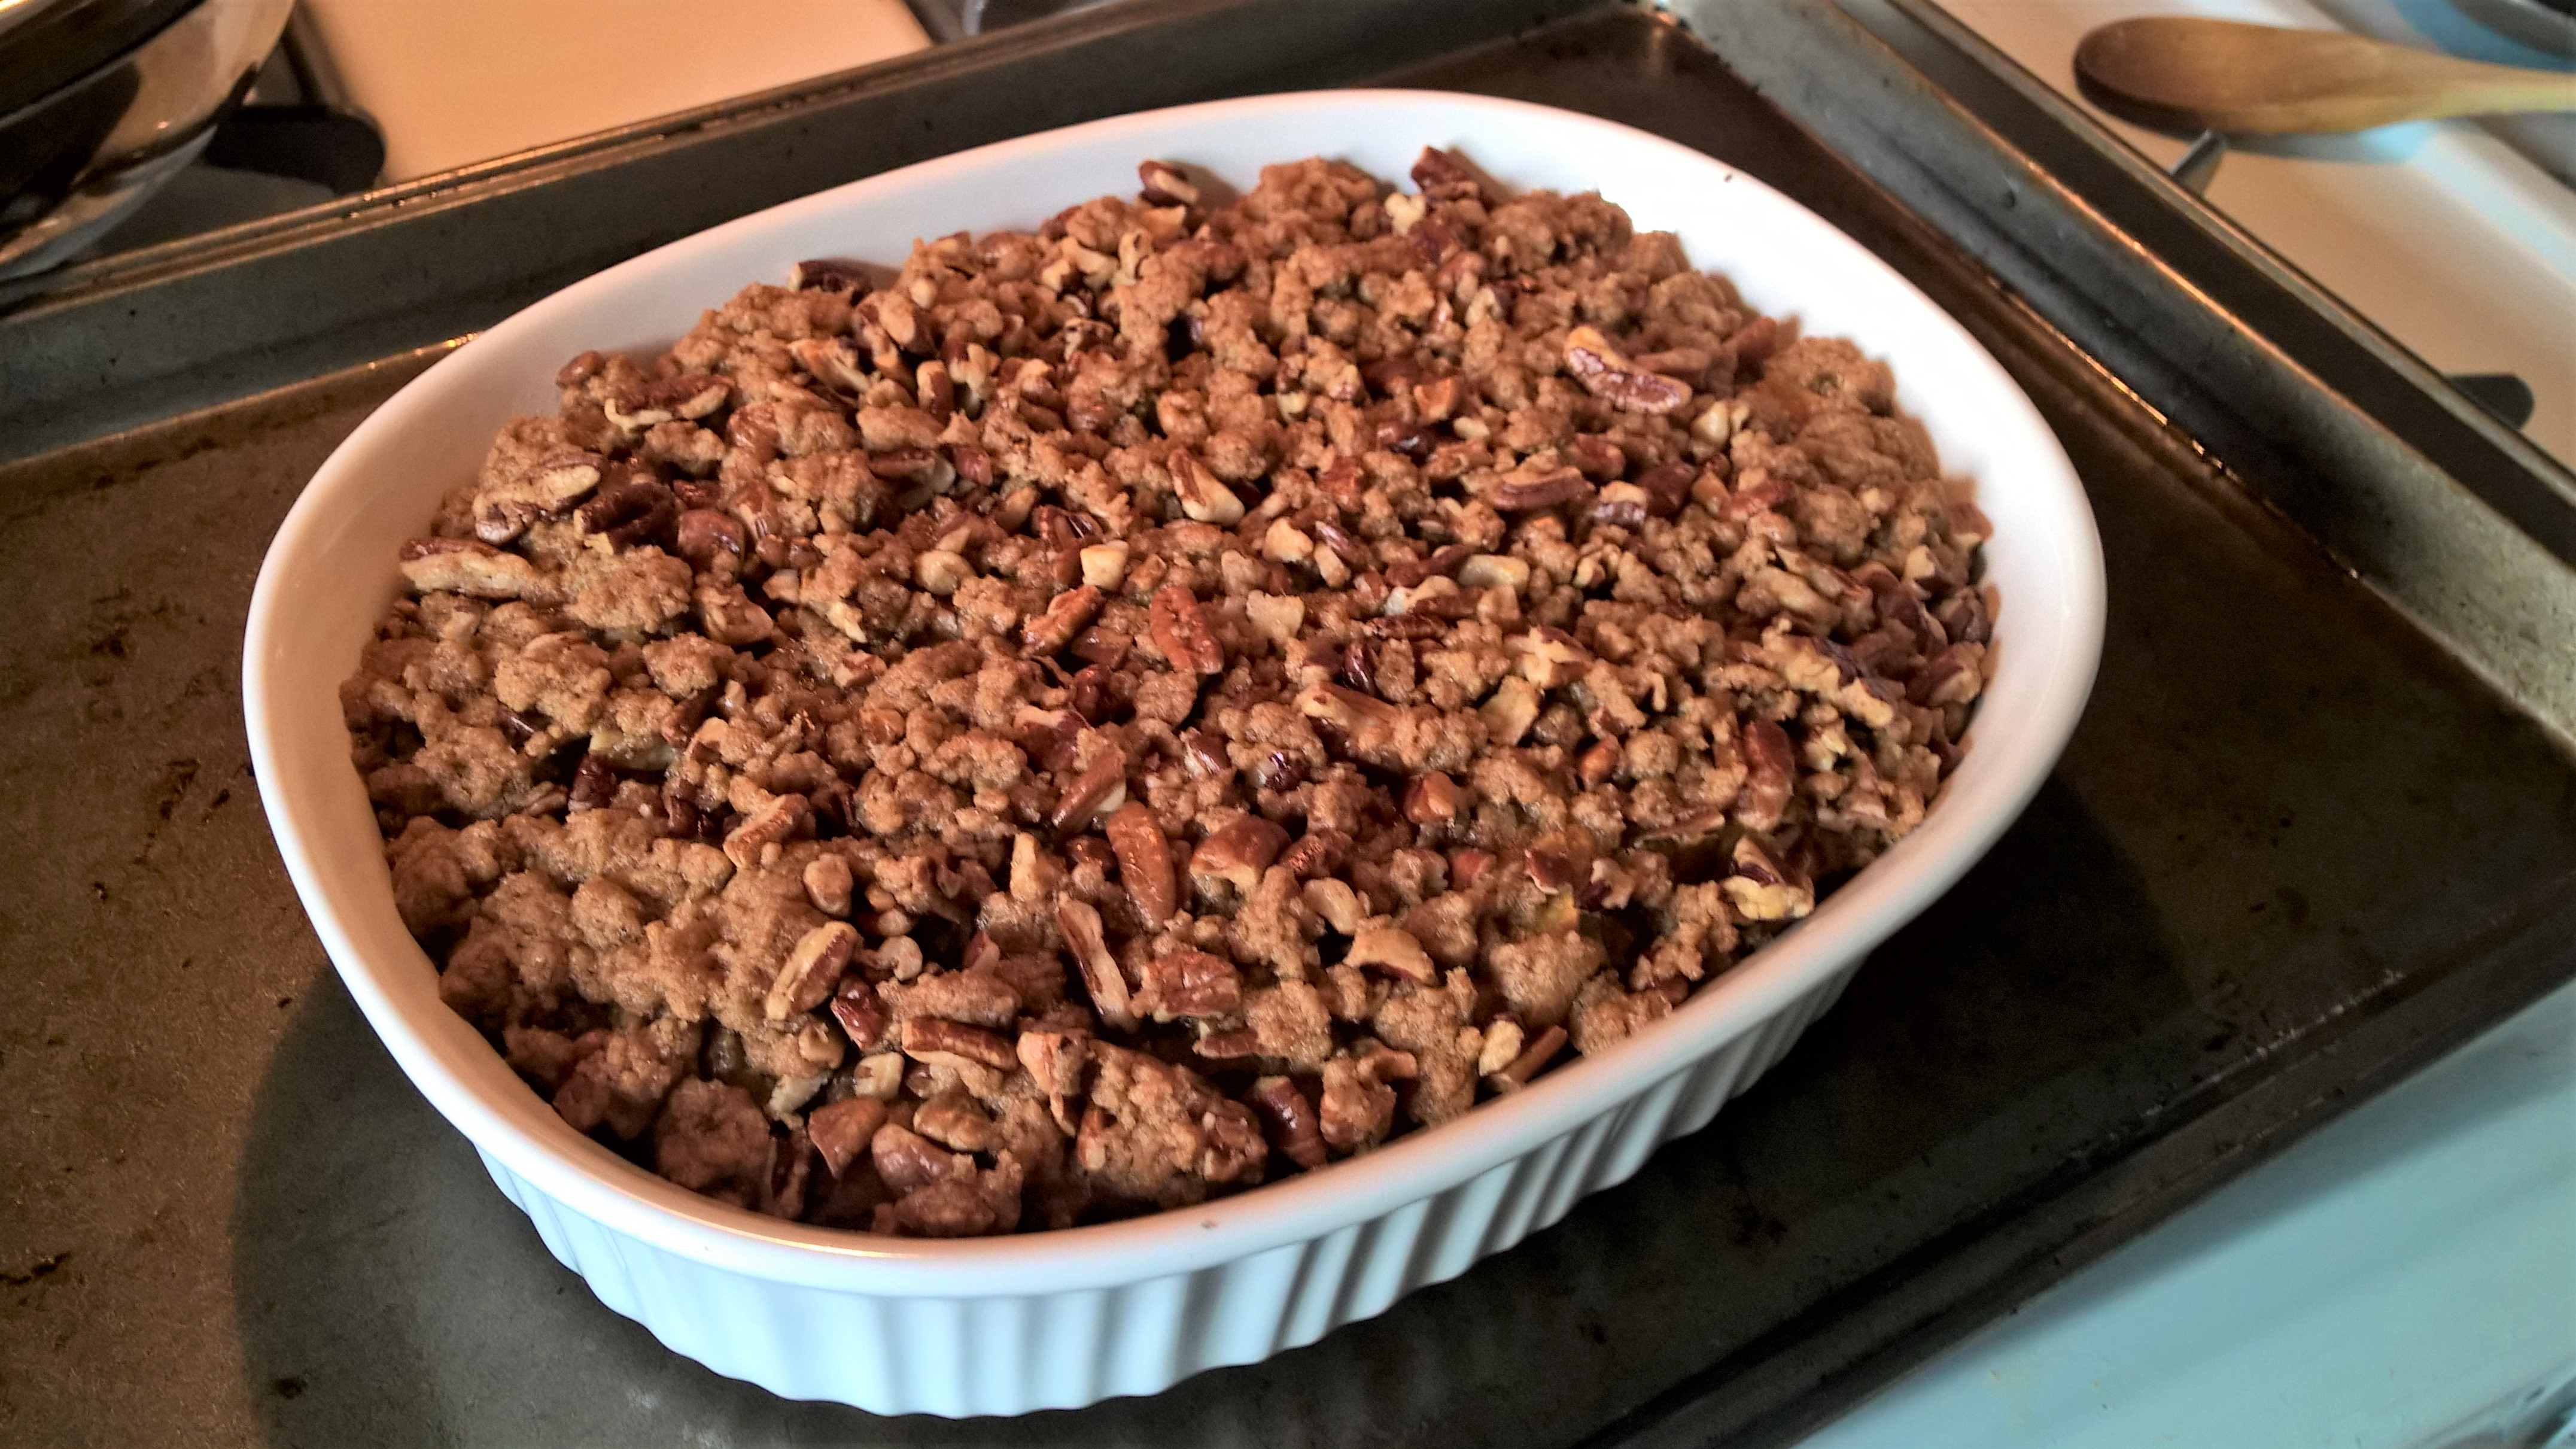 Roasted Sweet Potato Casserole with Pecan Crumble